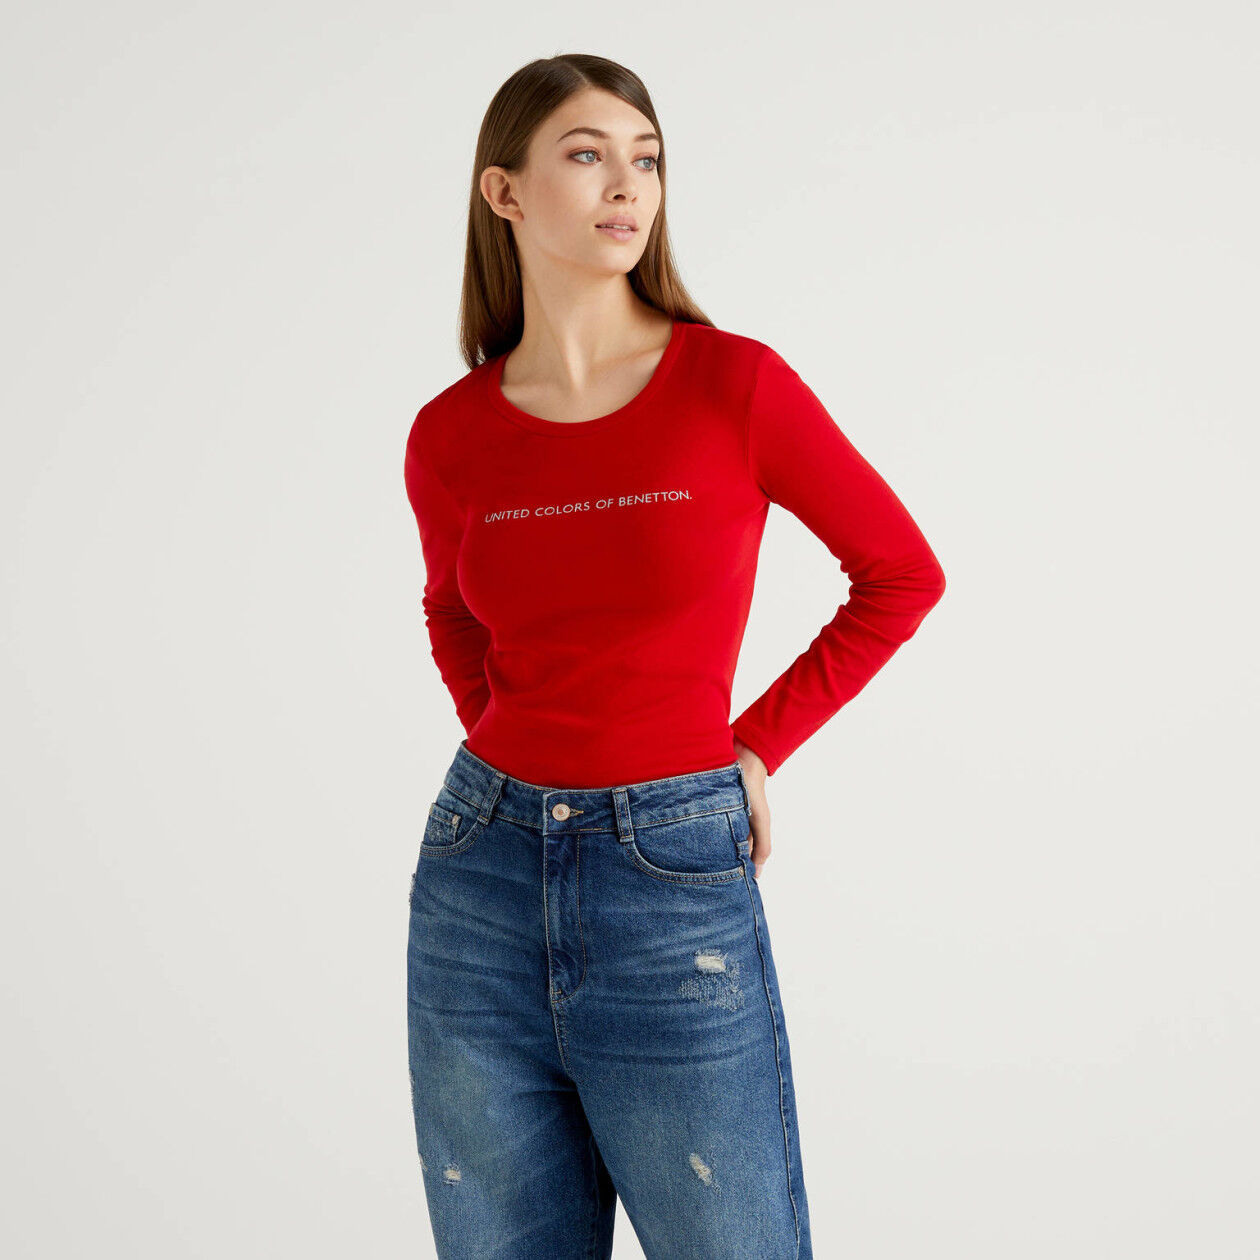 Long sleeve red t-shirt in 100% cotton